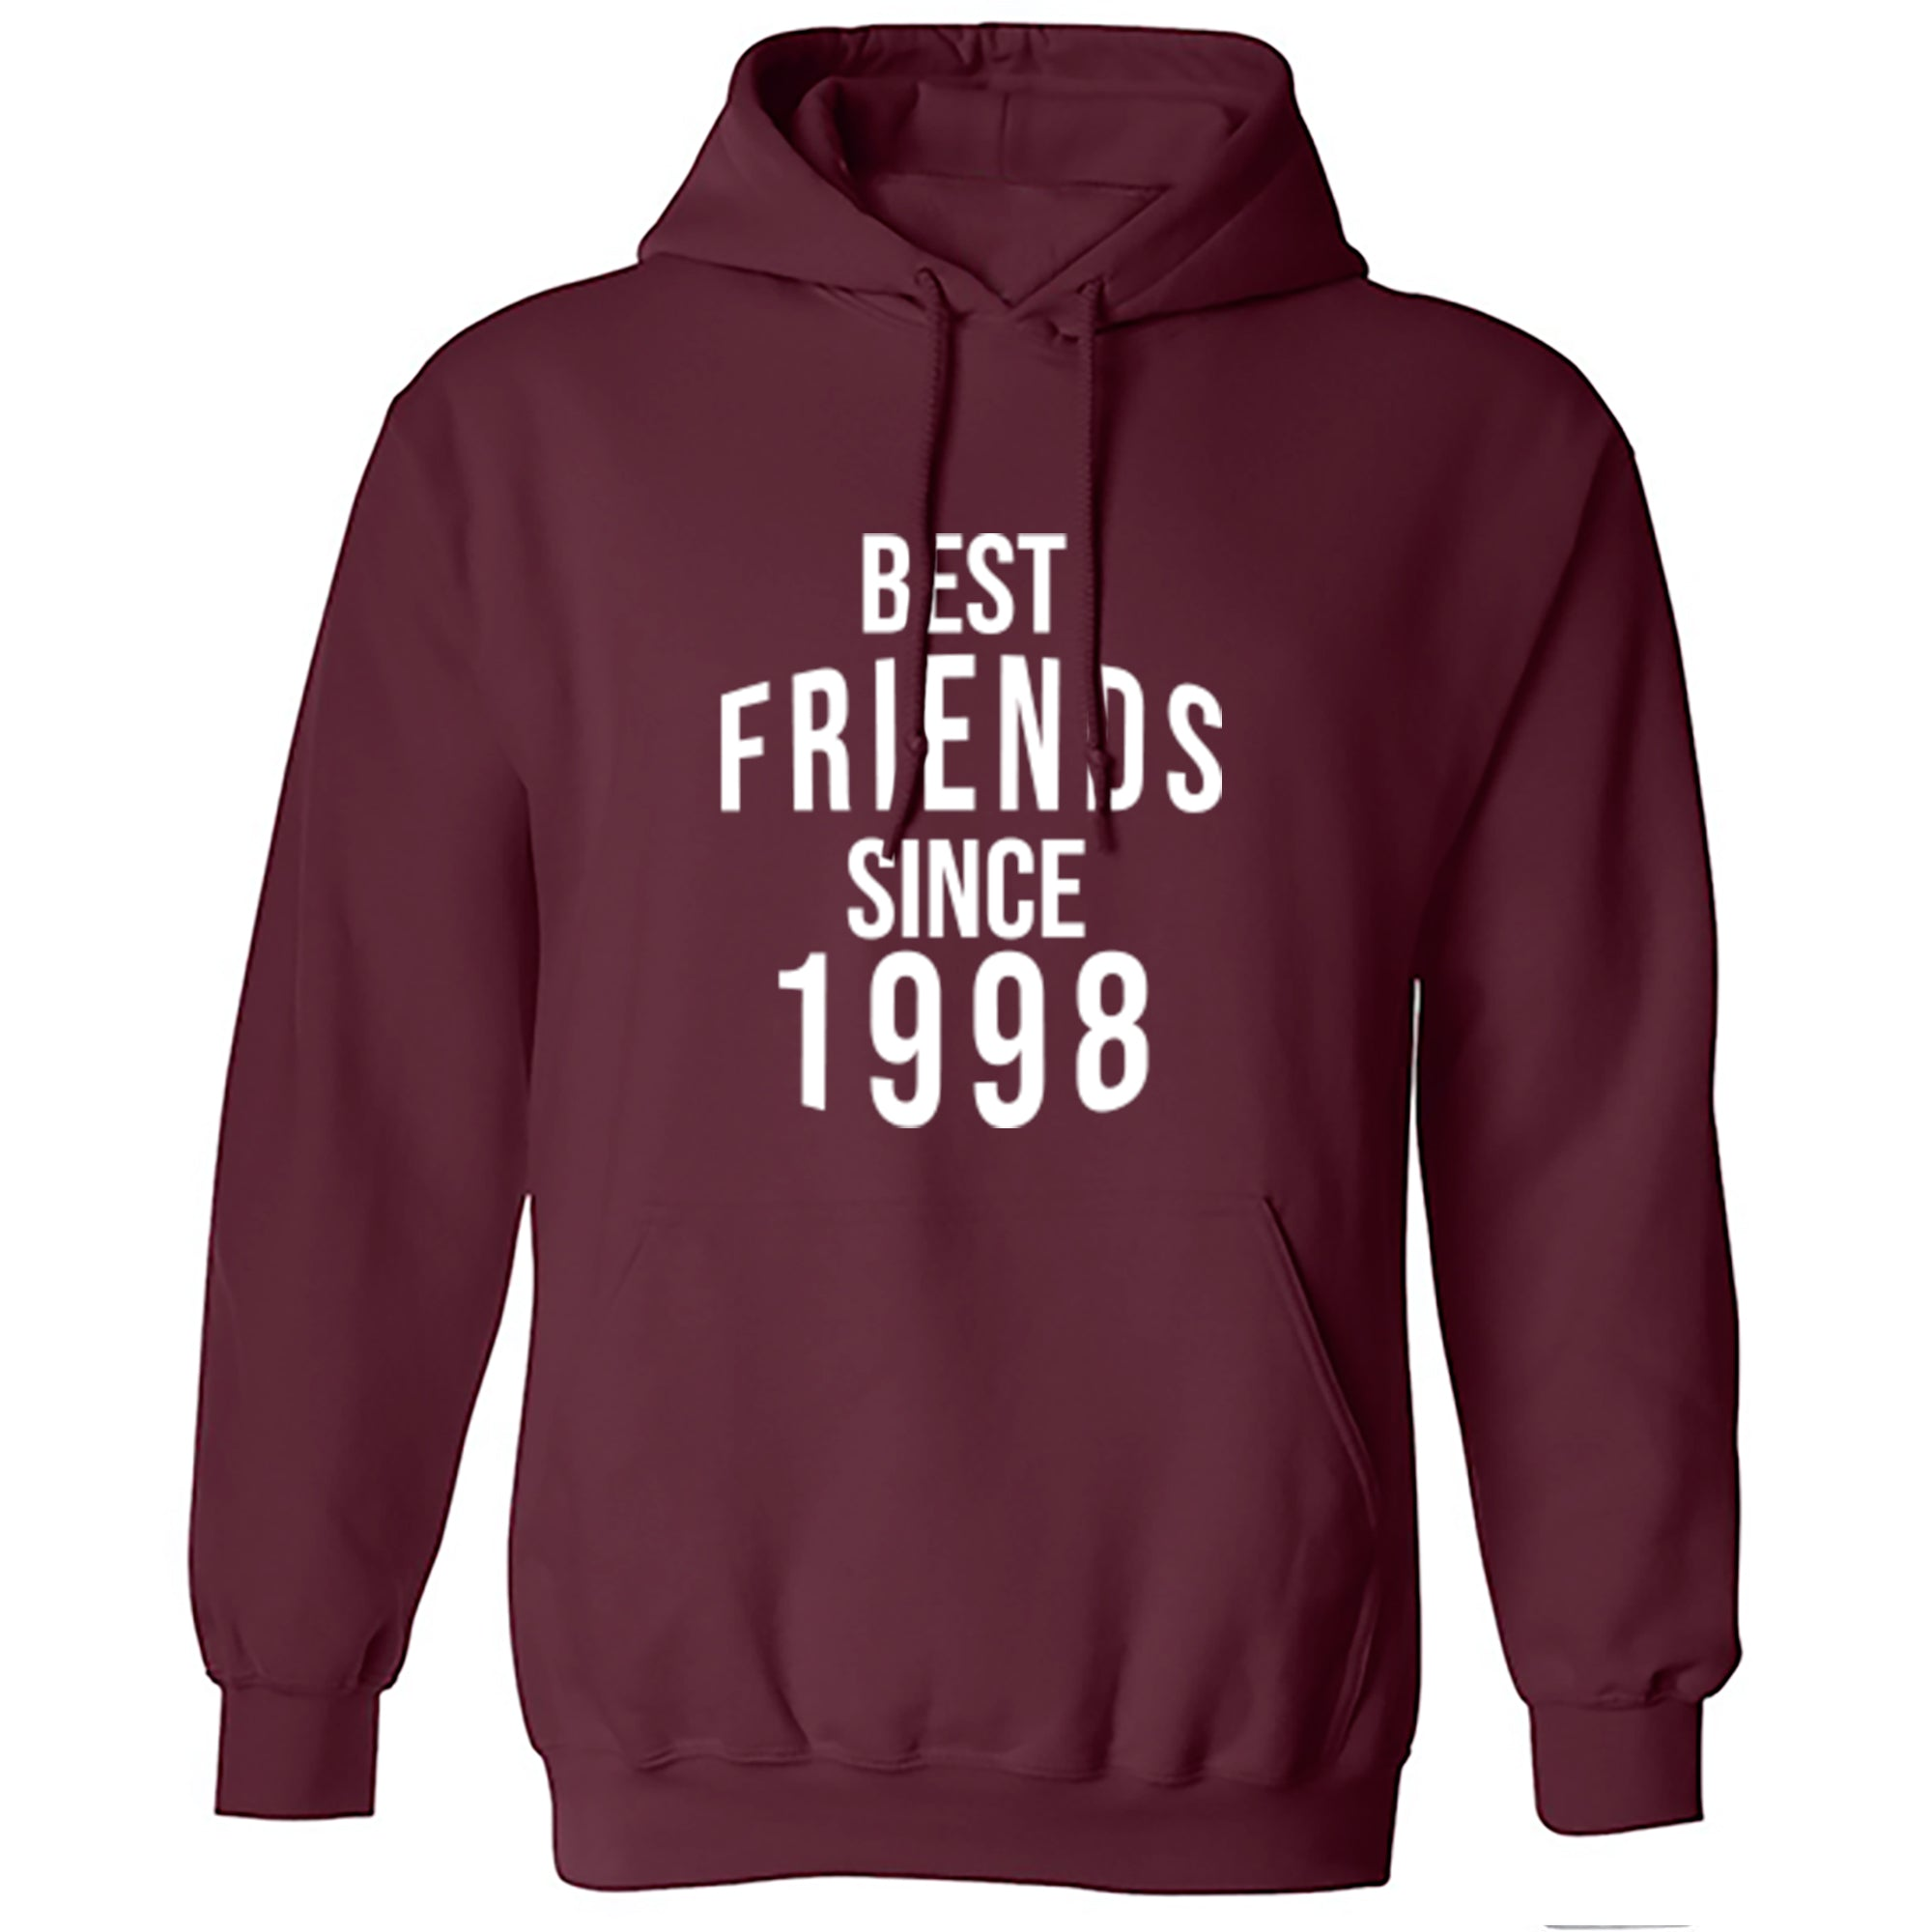 Best Friends Since 1998 Unisex Hoodie S0577 - Illustrated Identity Ltd.